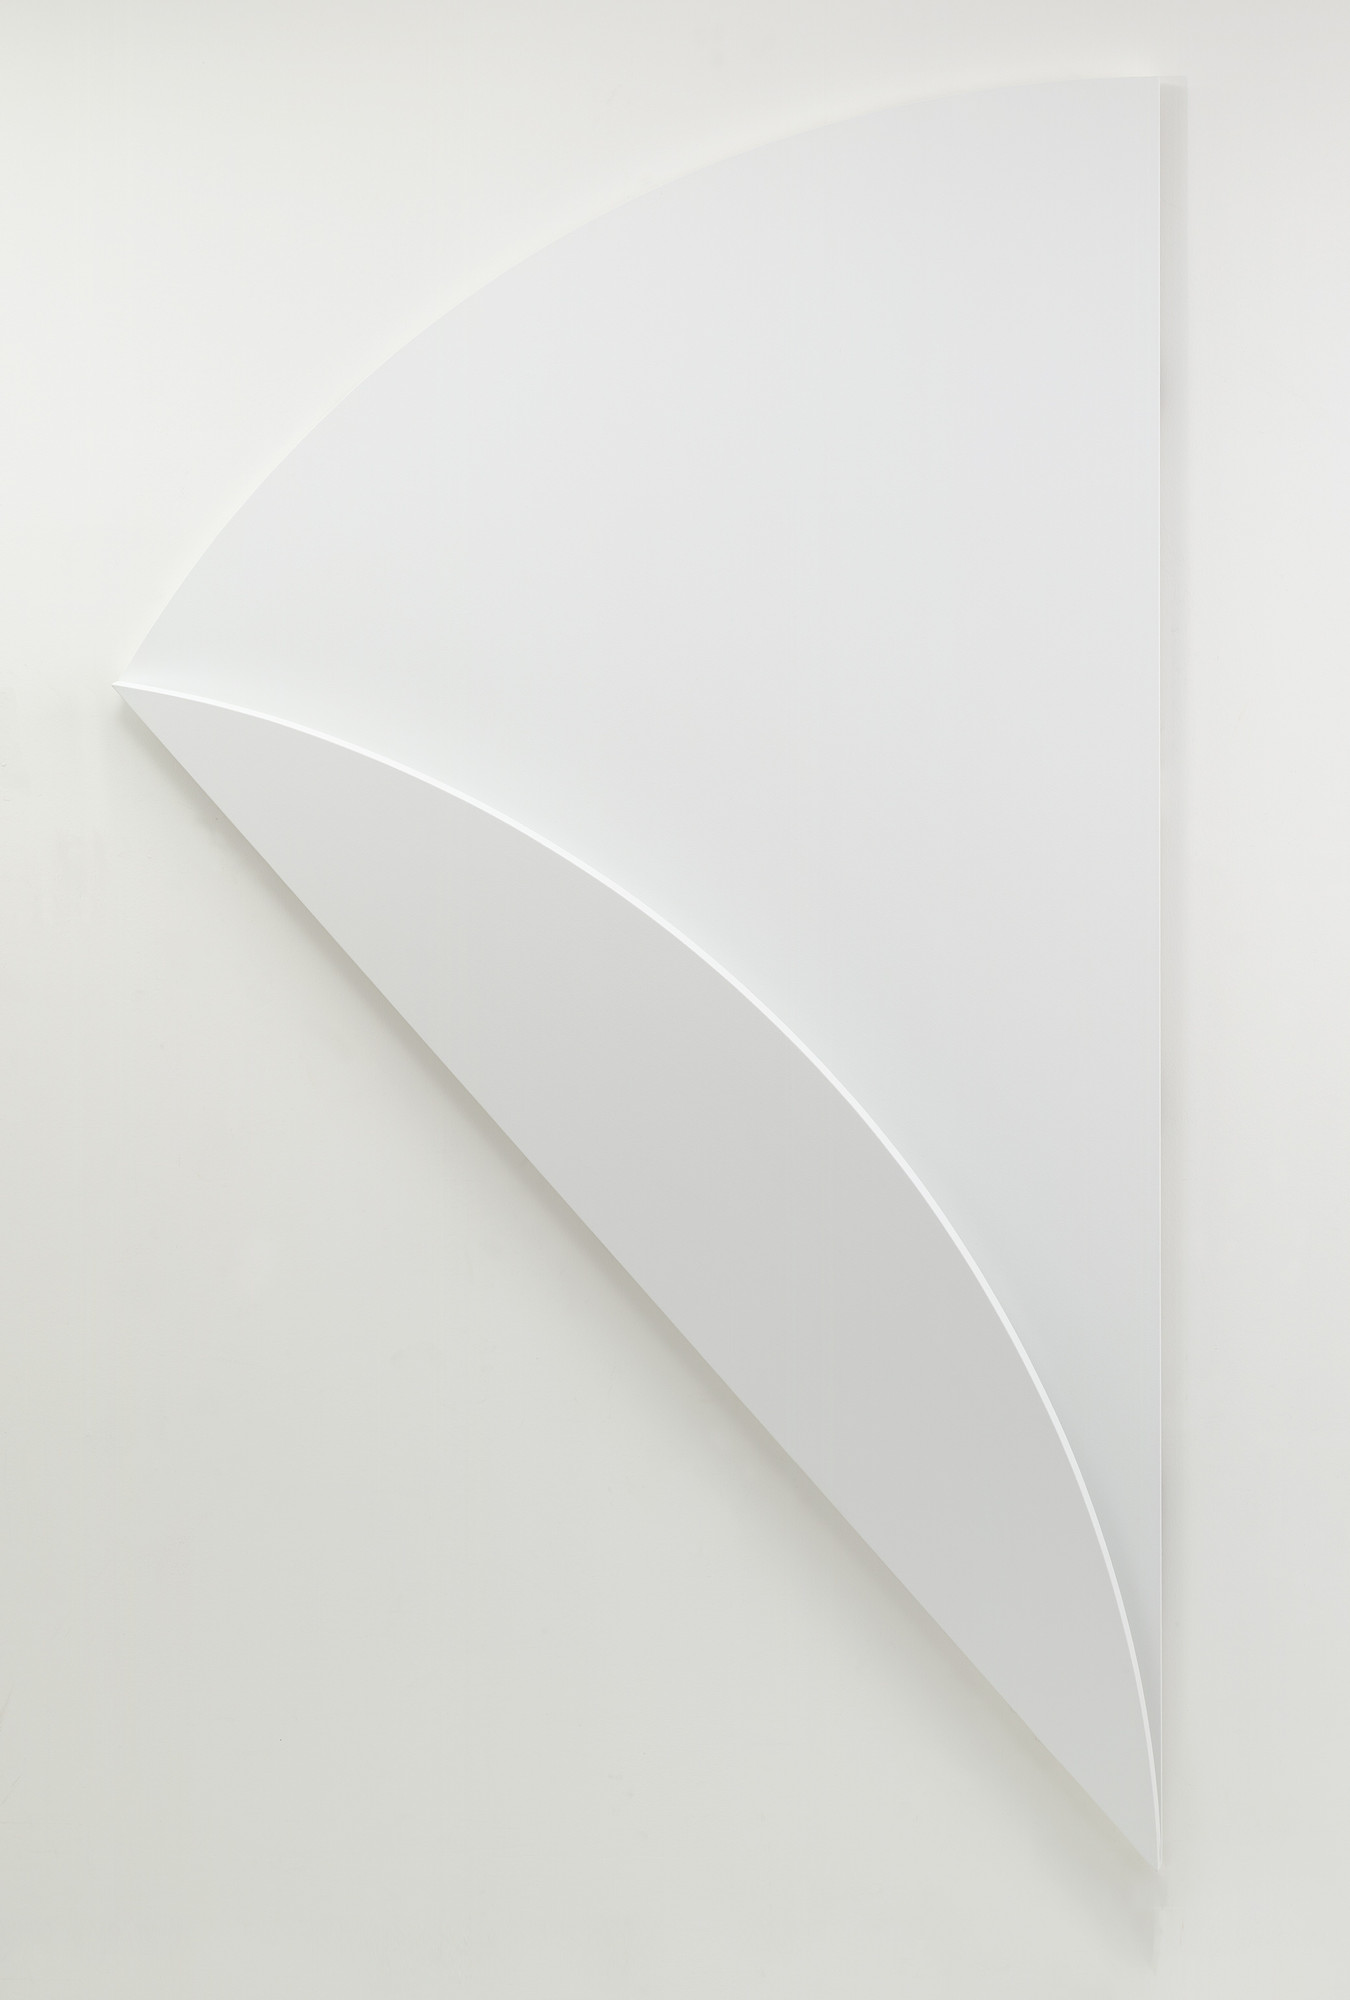 Ellsworth Kelly. White Relief over White. 2003